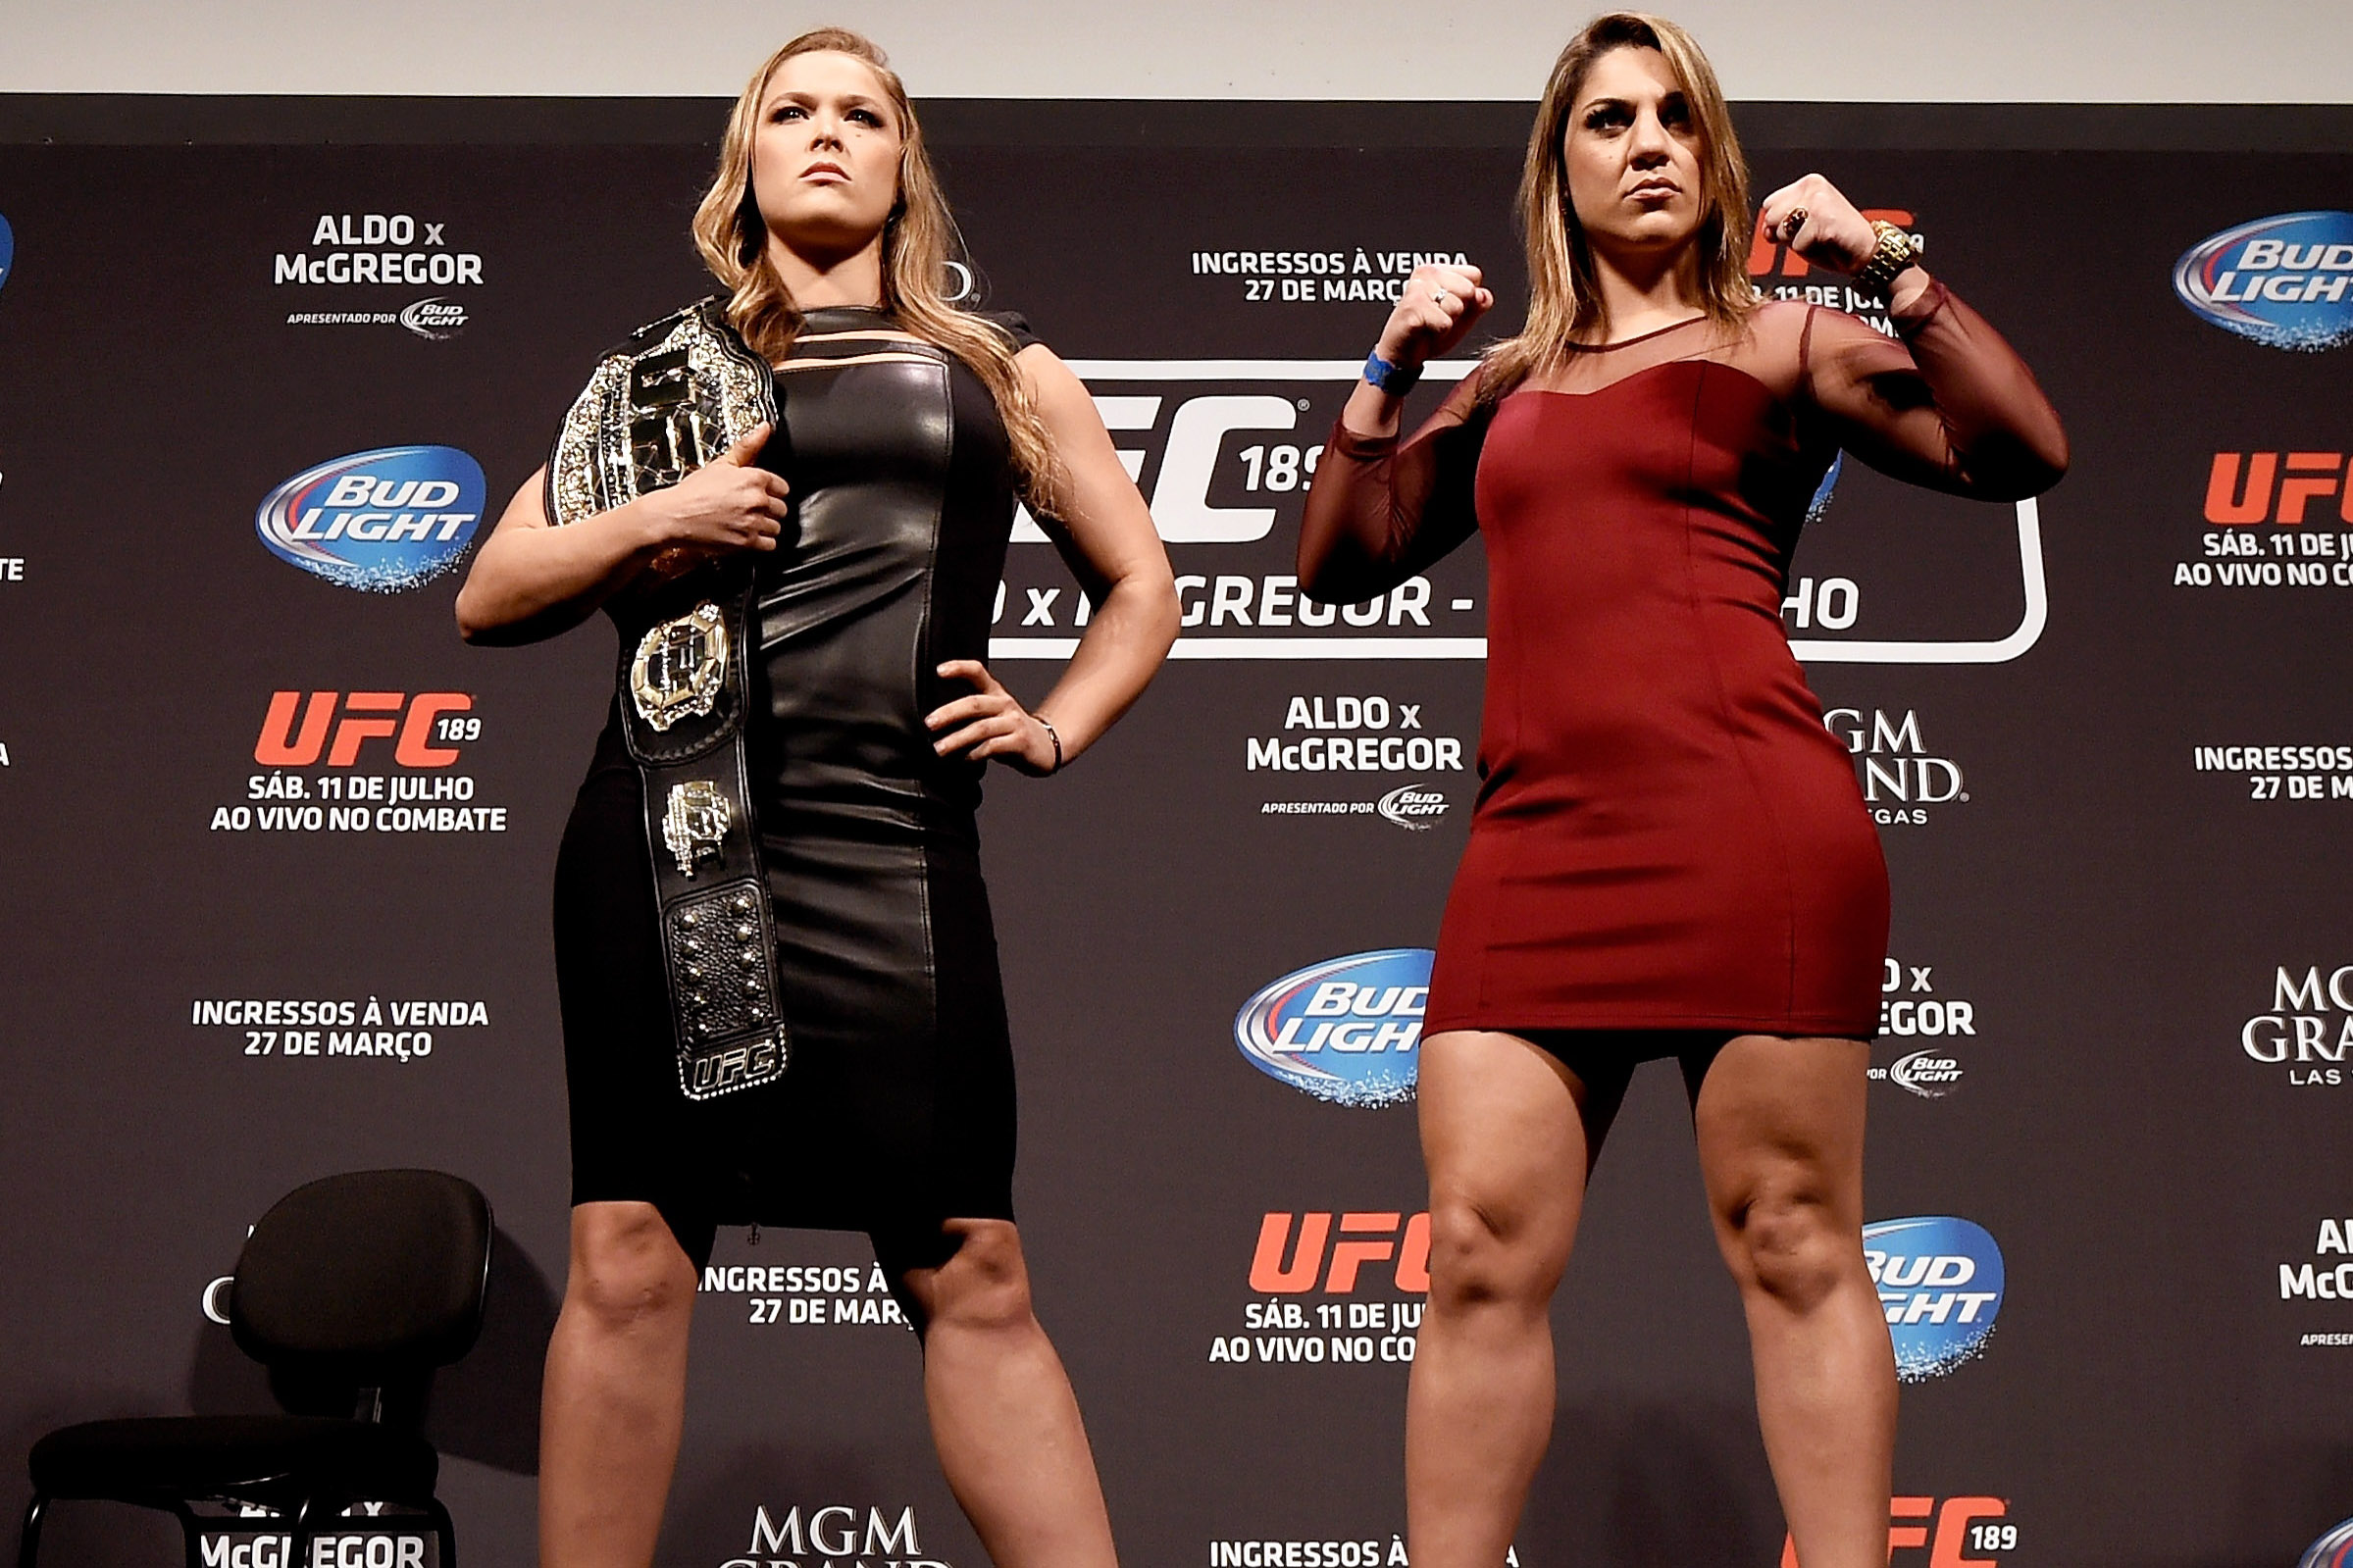 RIO DE JANEIRO, BRAZIL - MARCH 20:  UFC Women's Bantamweight Champion Ronda Rousey of the United States (L) and Bethe Correia of Brazil (R) pose for the media during the 189 World Media Tour Launch press conference at Maracanazinho on March 20, 2015 in Rio de Janeiro, Brazil.  (Photo by Buda Mendes/Zuffa LLC/Zuffa LLC via Getty Images)